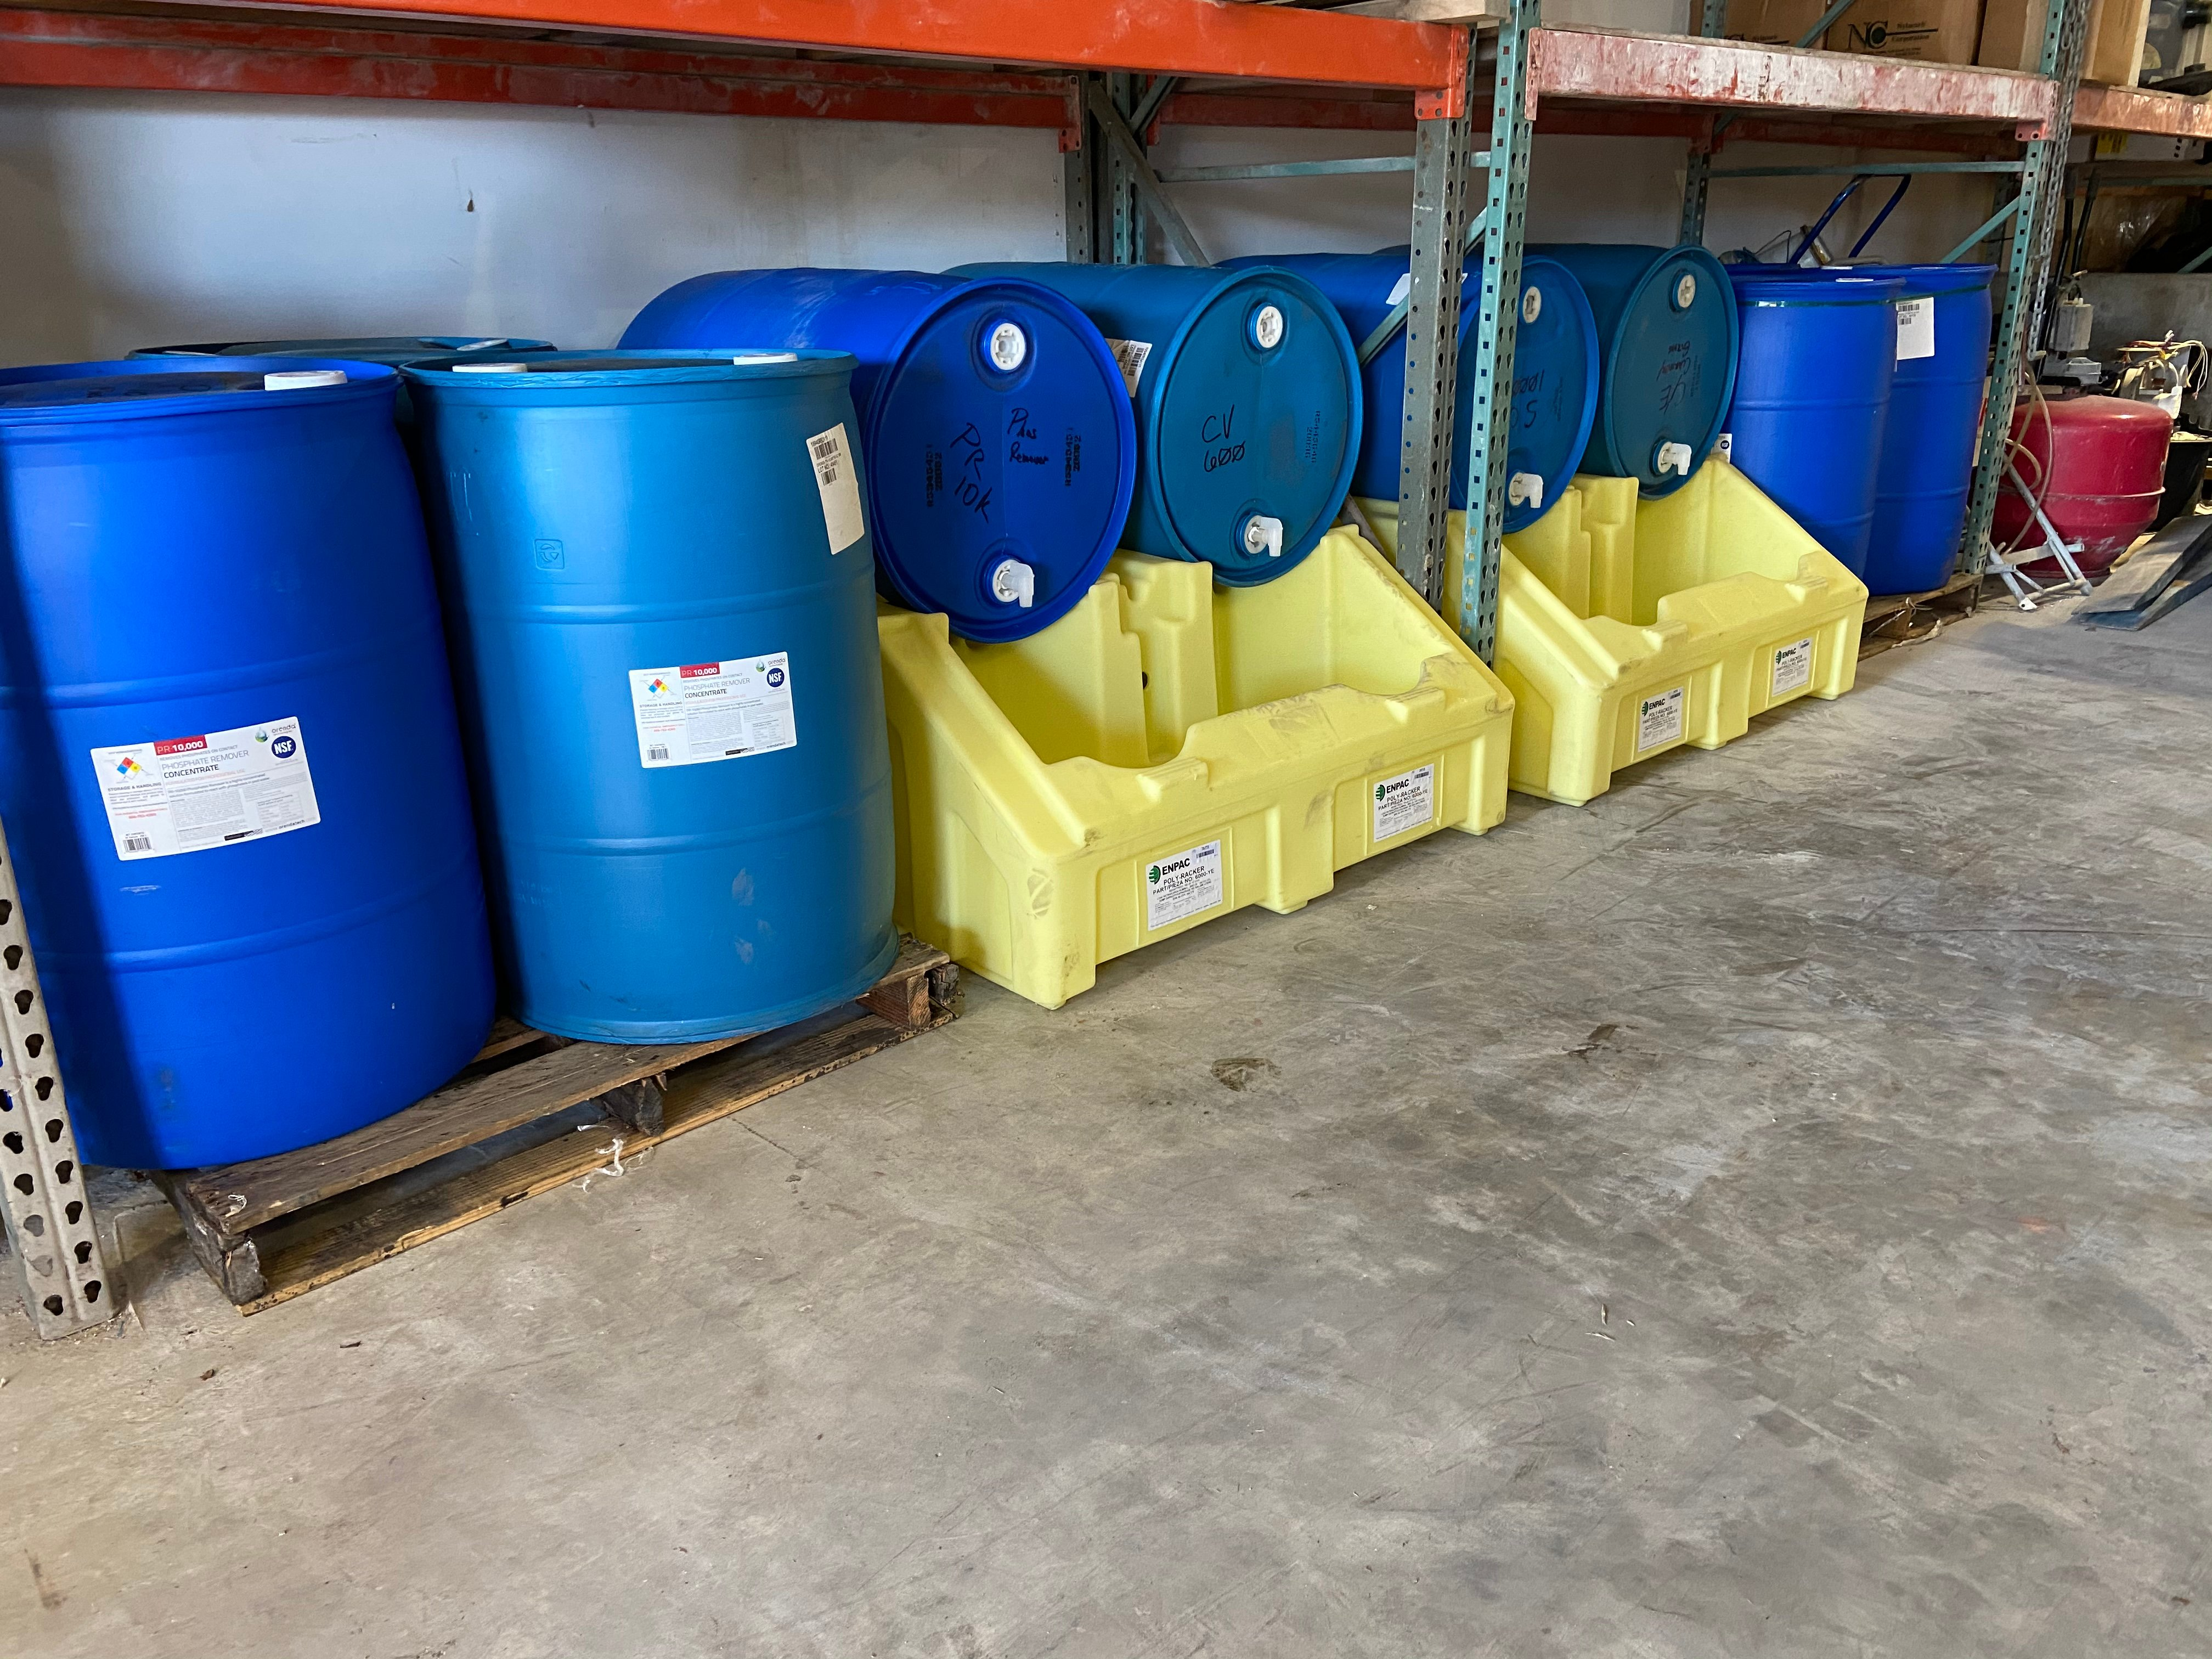 55 gallon orenda drums, pool chemical storage, how to store chemicals, chemical spill containment, spill containers, 55 gal spill